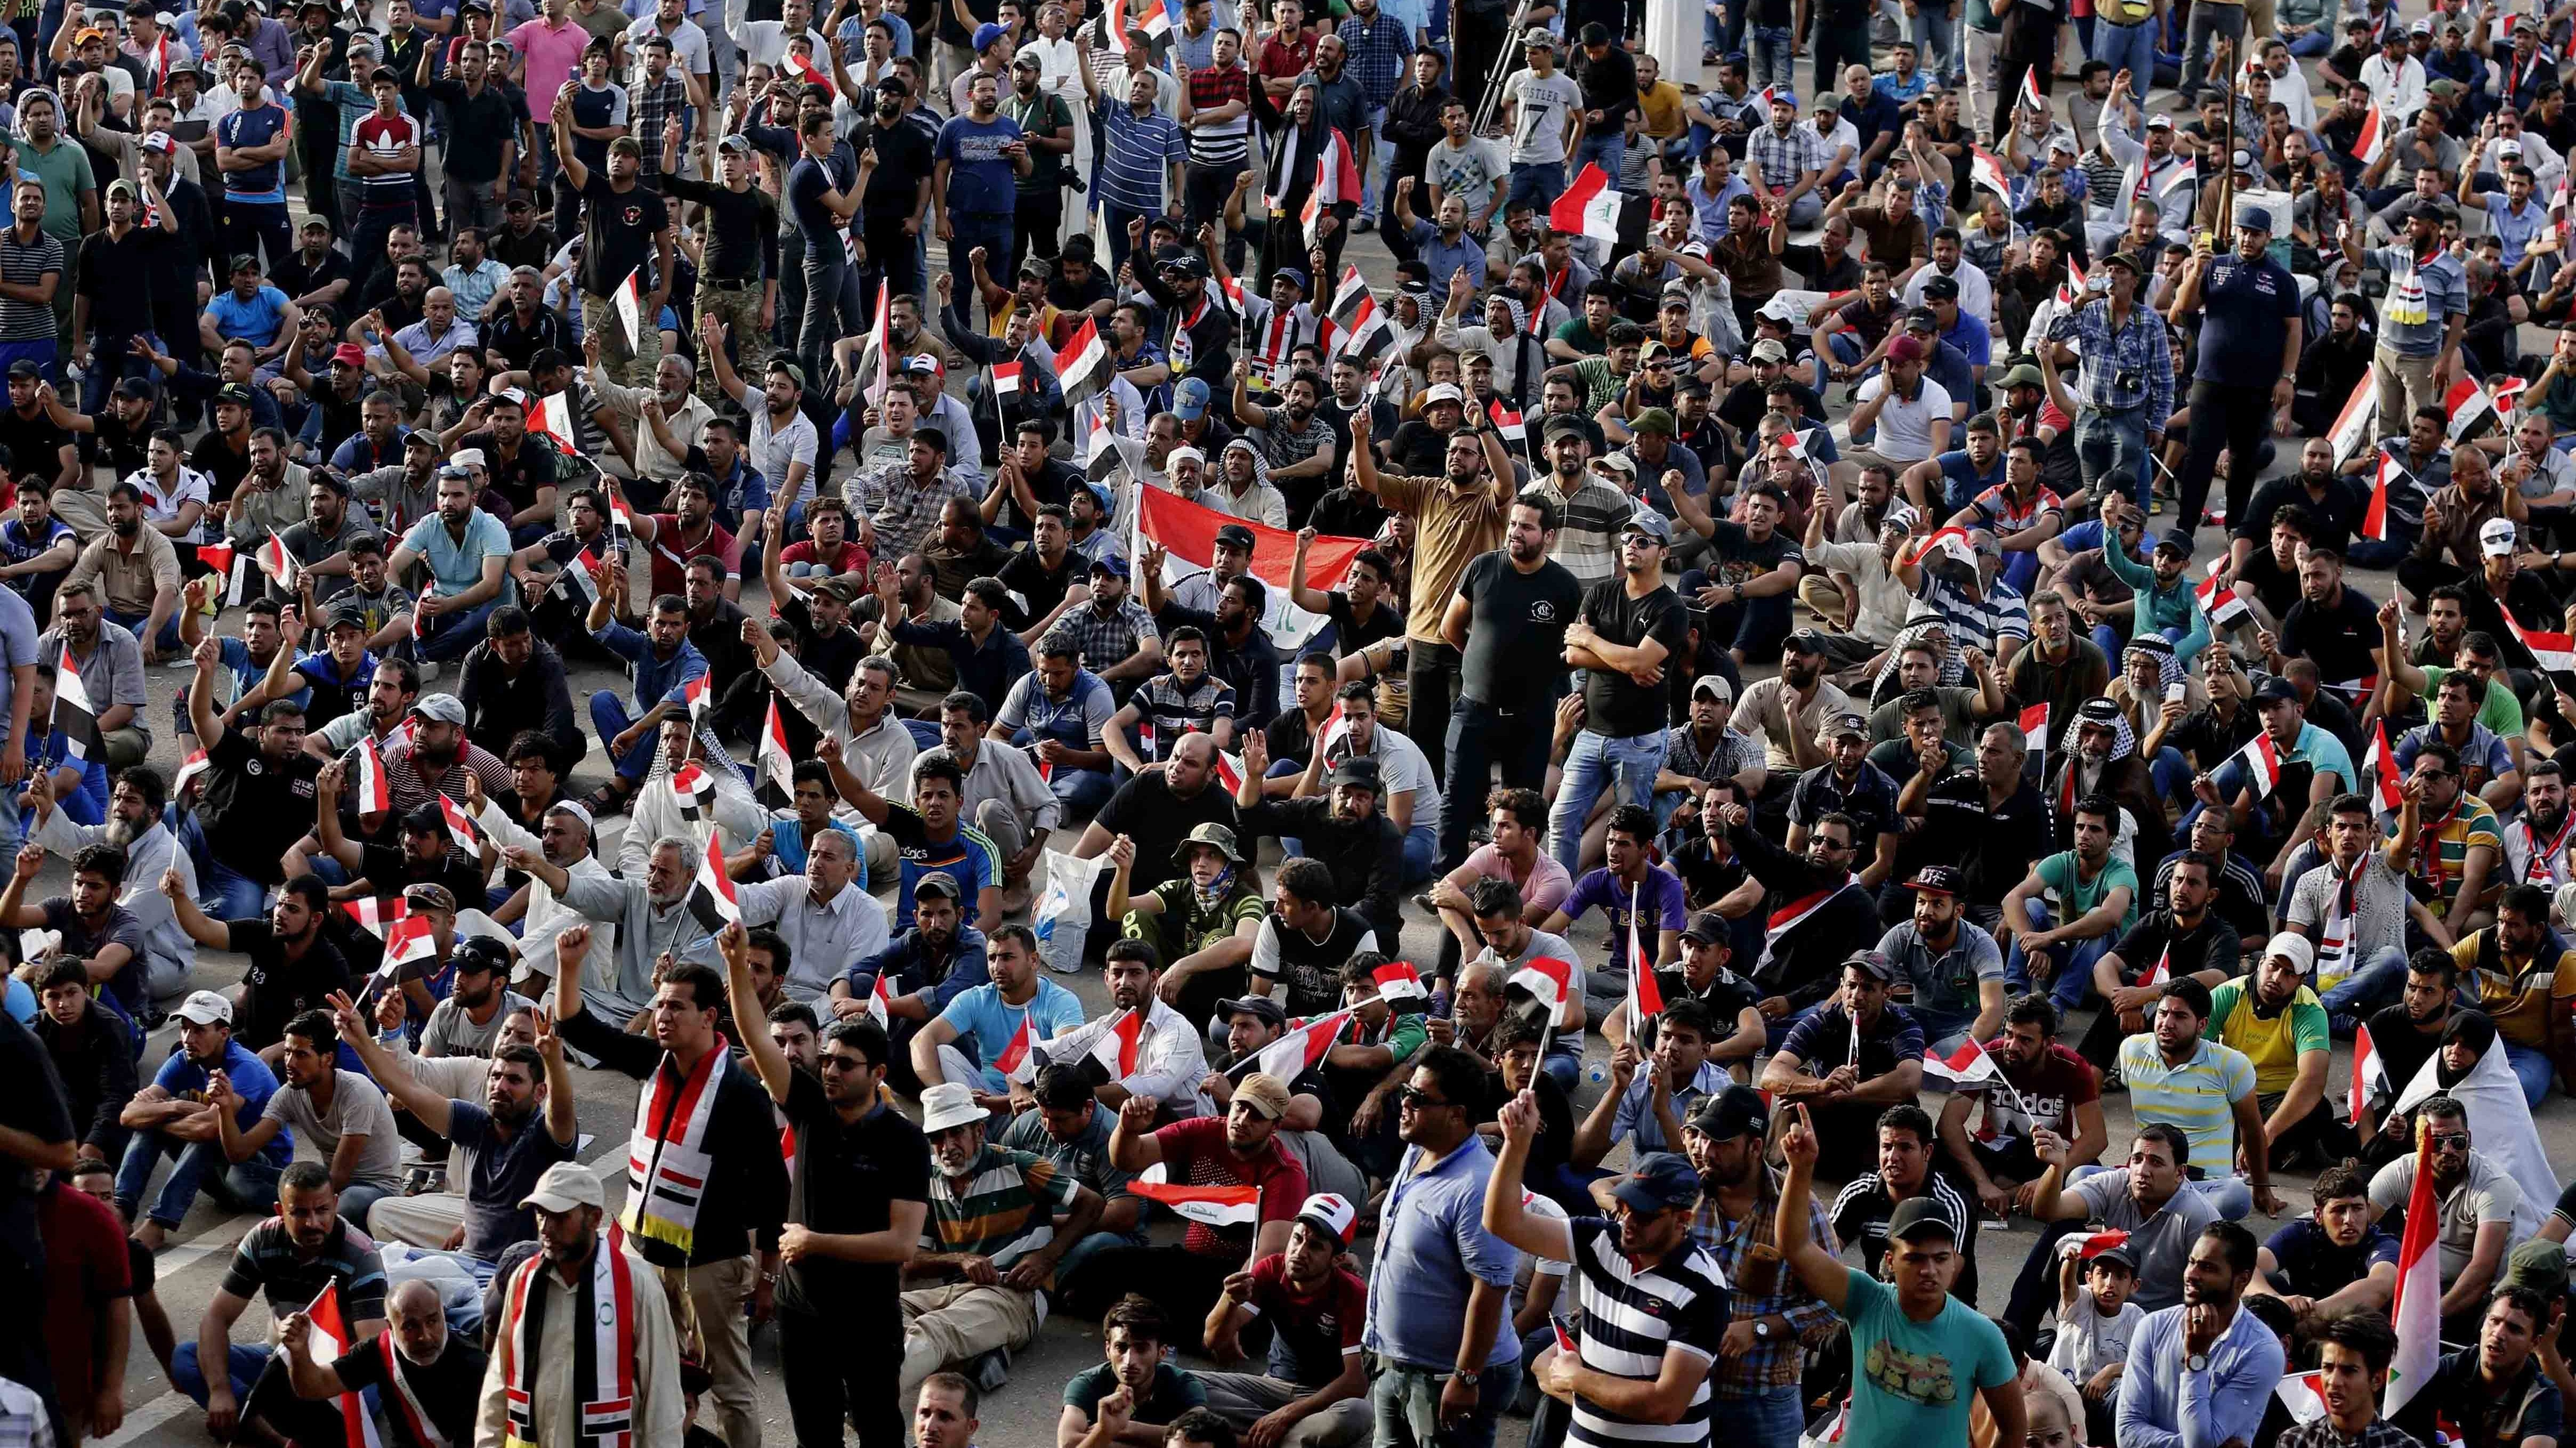 Iraqi Protestors Withdraw From Unprecedented Occupation of Baghdad's Green Zone